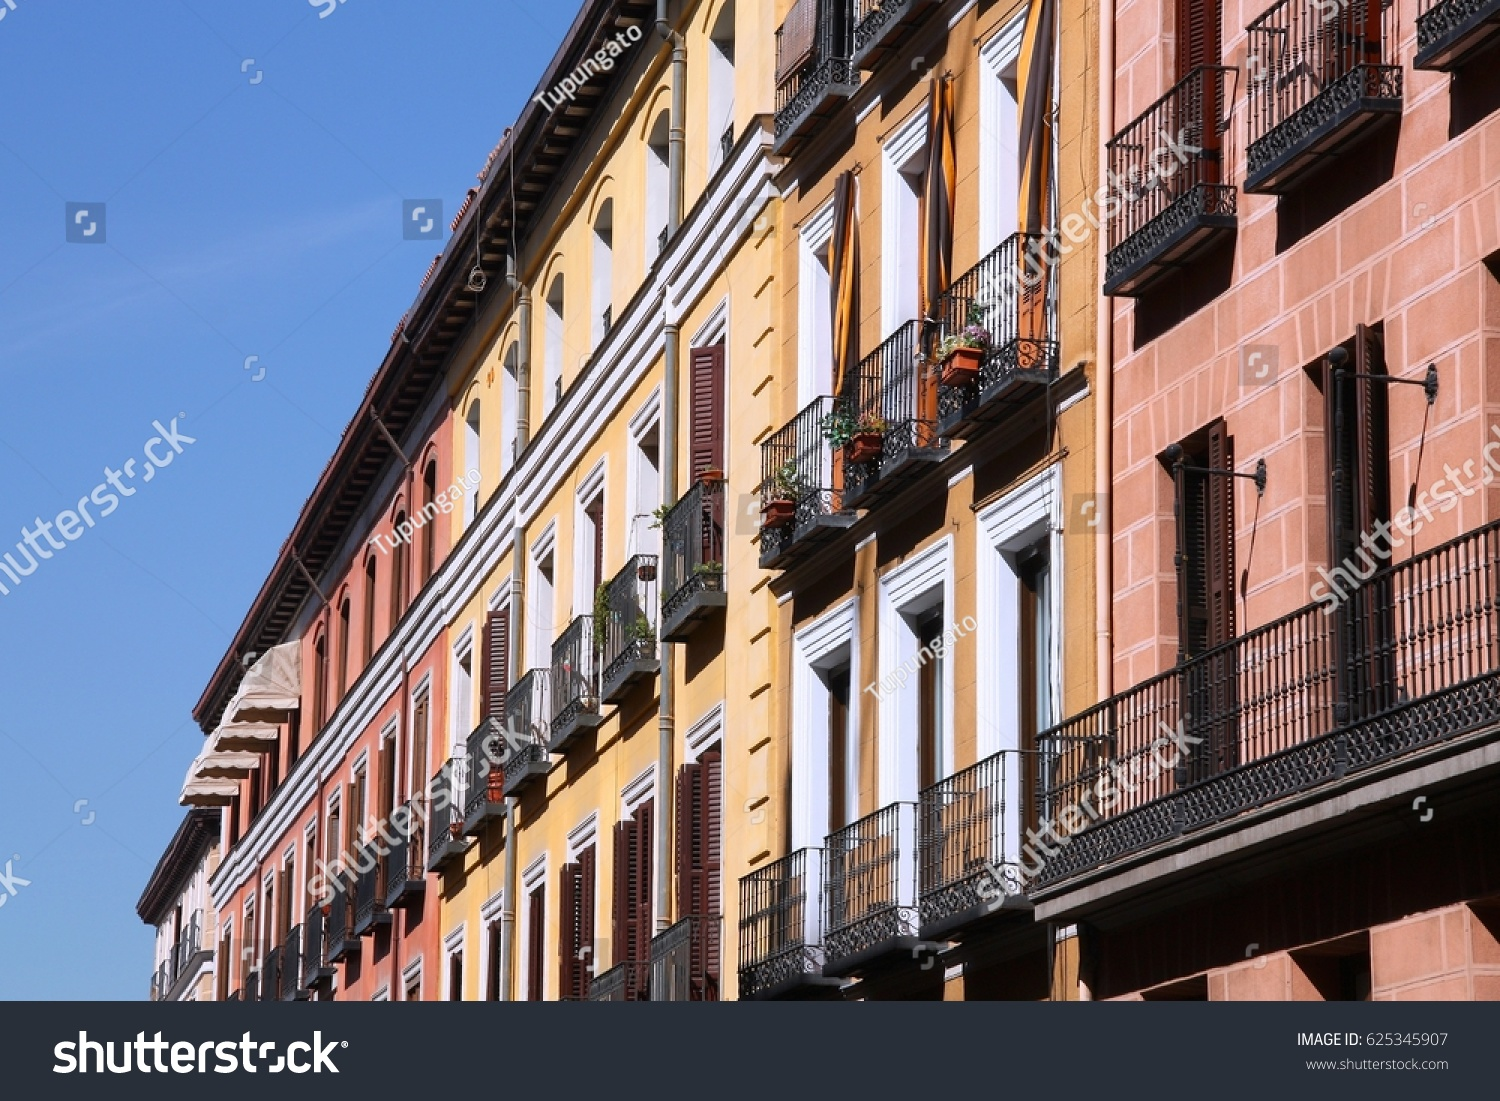 Mediterranean Architecture Spain Old Apartment Buildings Stock ...